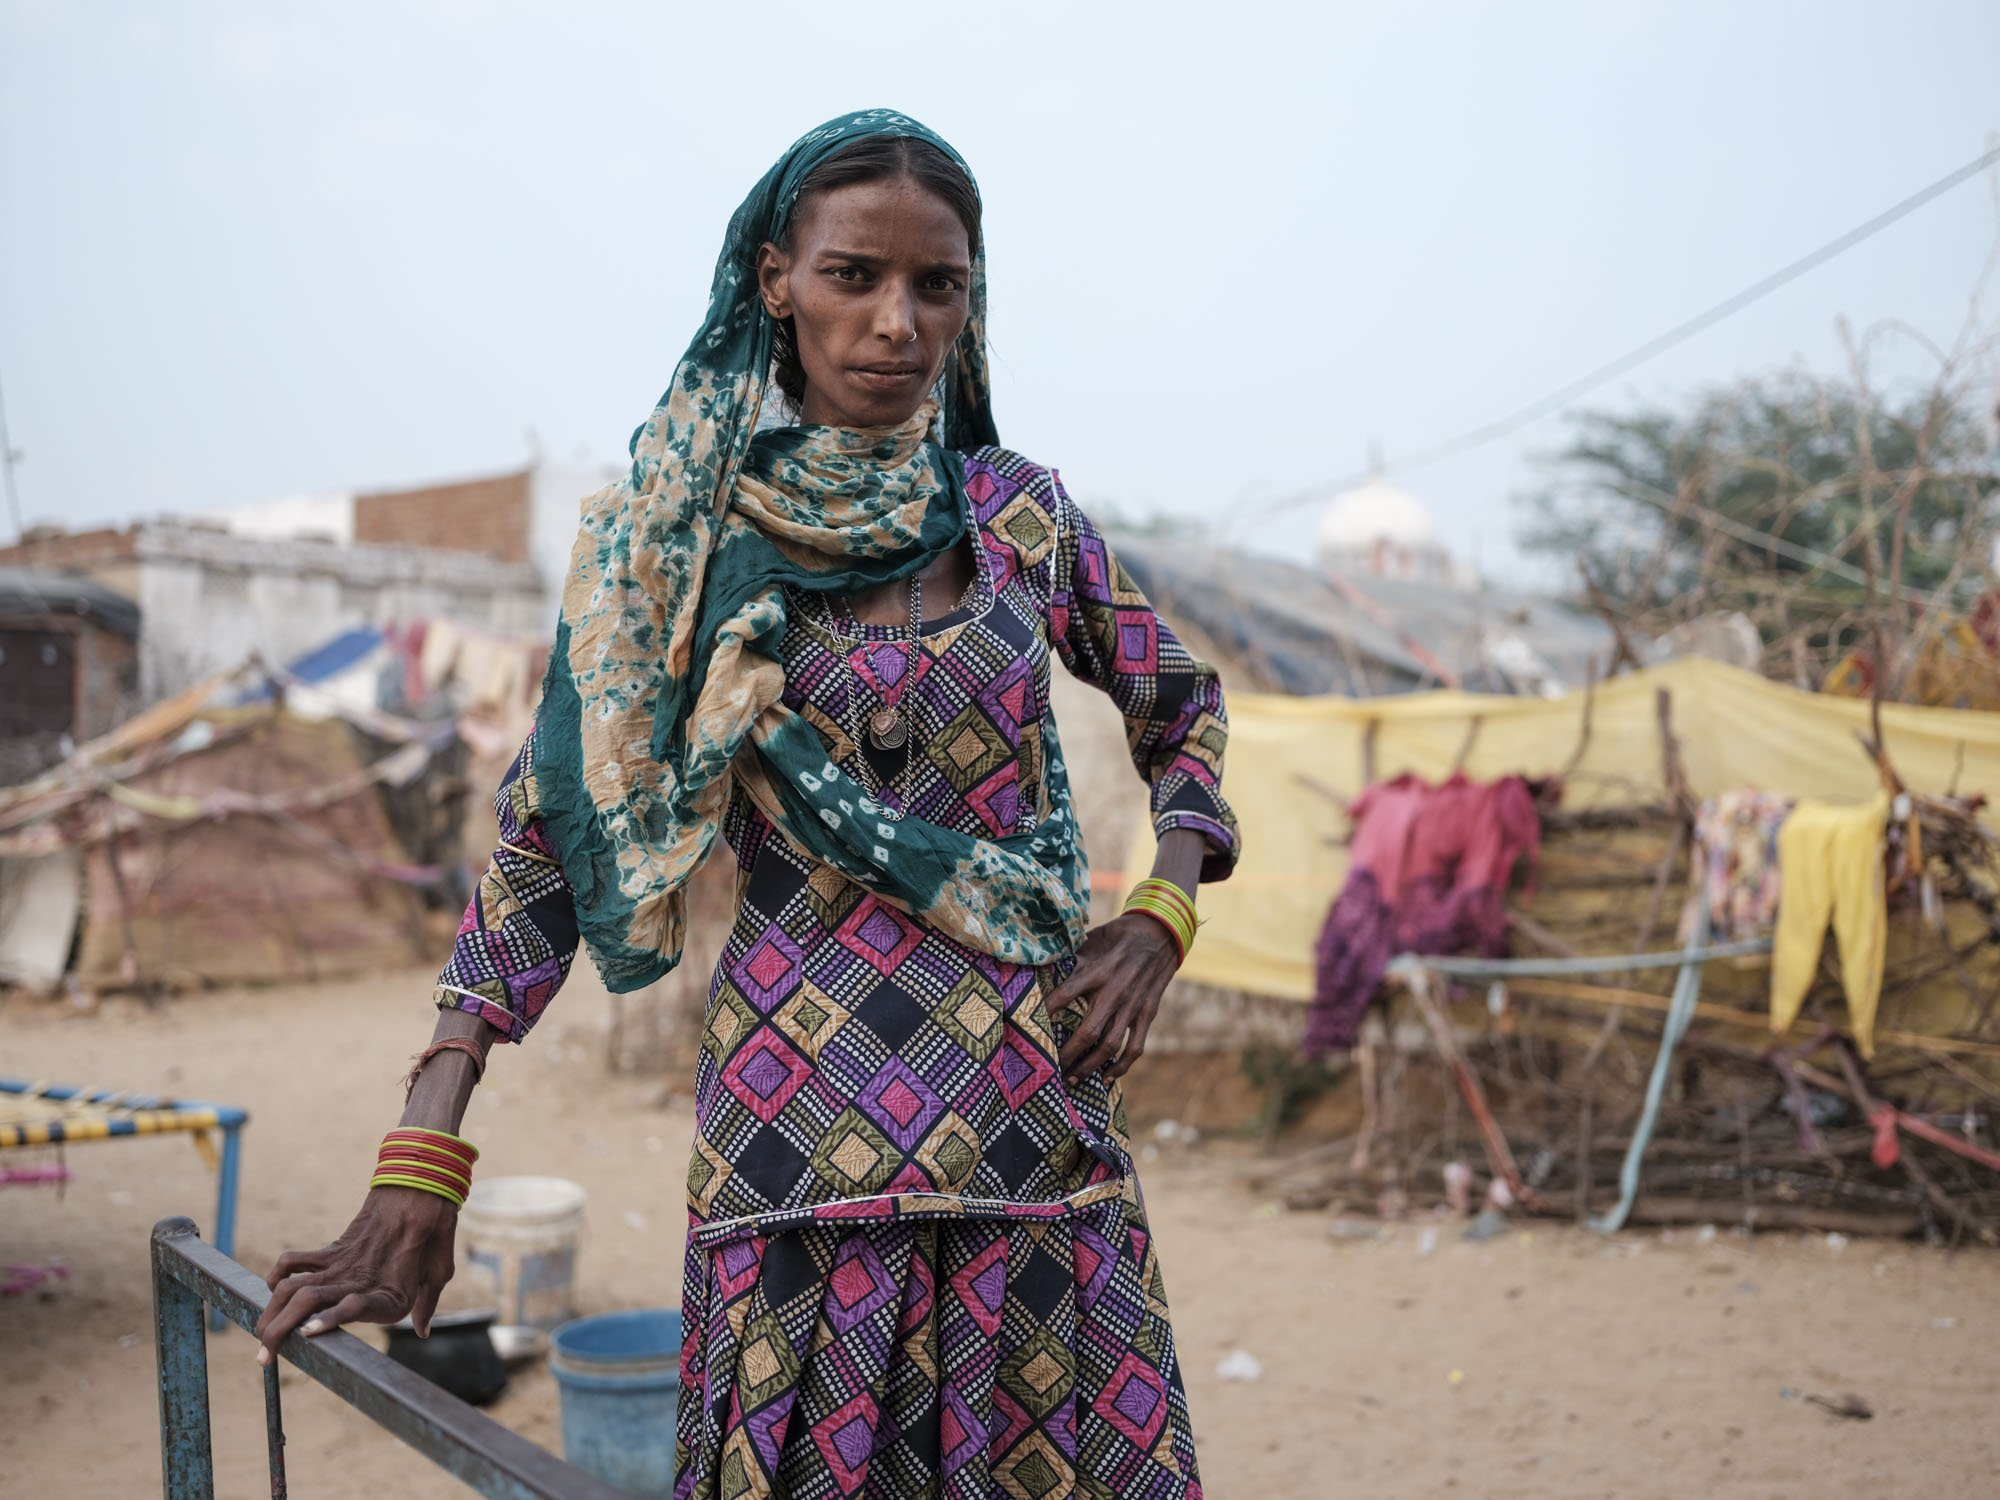 woman Gypsy Kalbelia tribe nomad Rajasthan India Documentary Photography Jose Jeuland Photographer print fine art